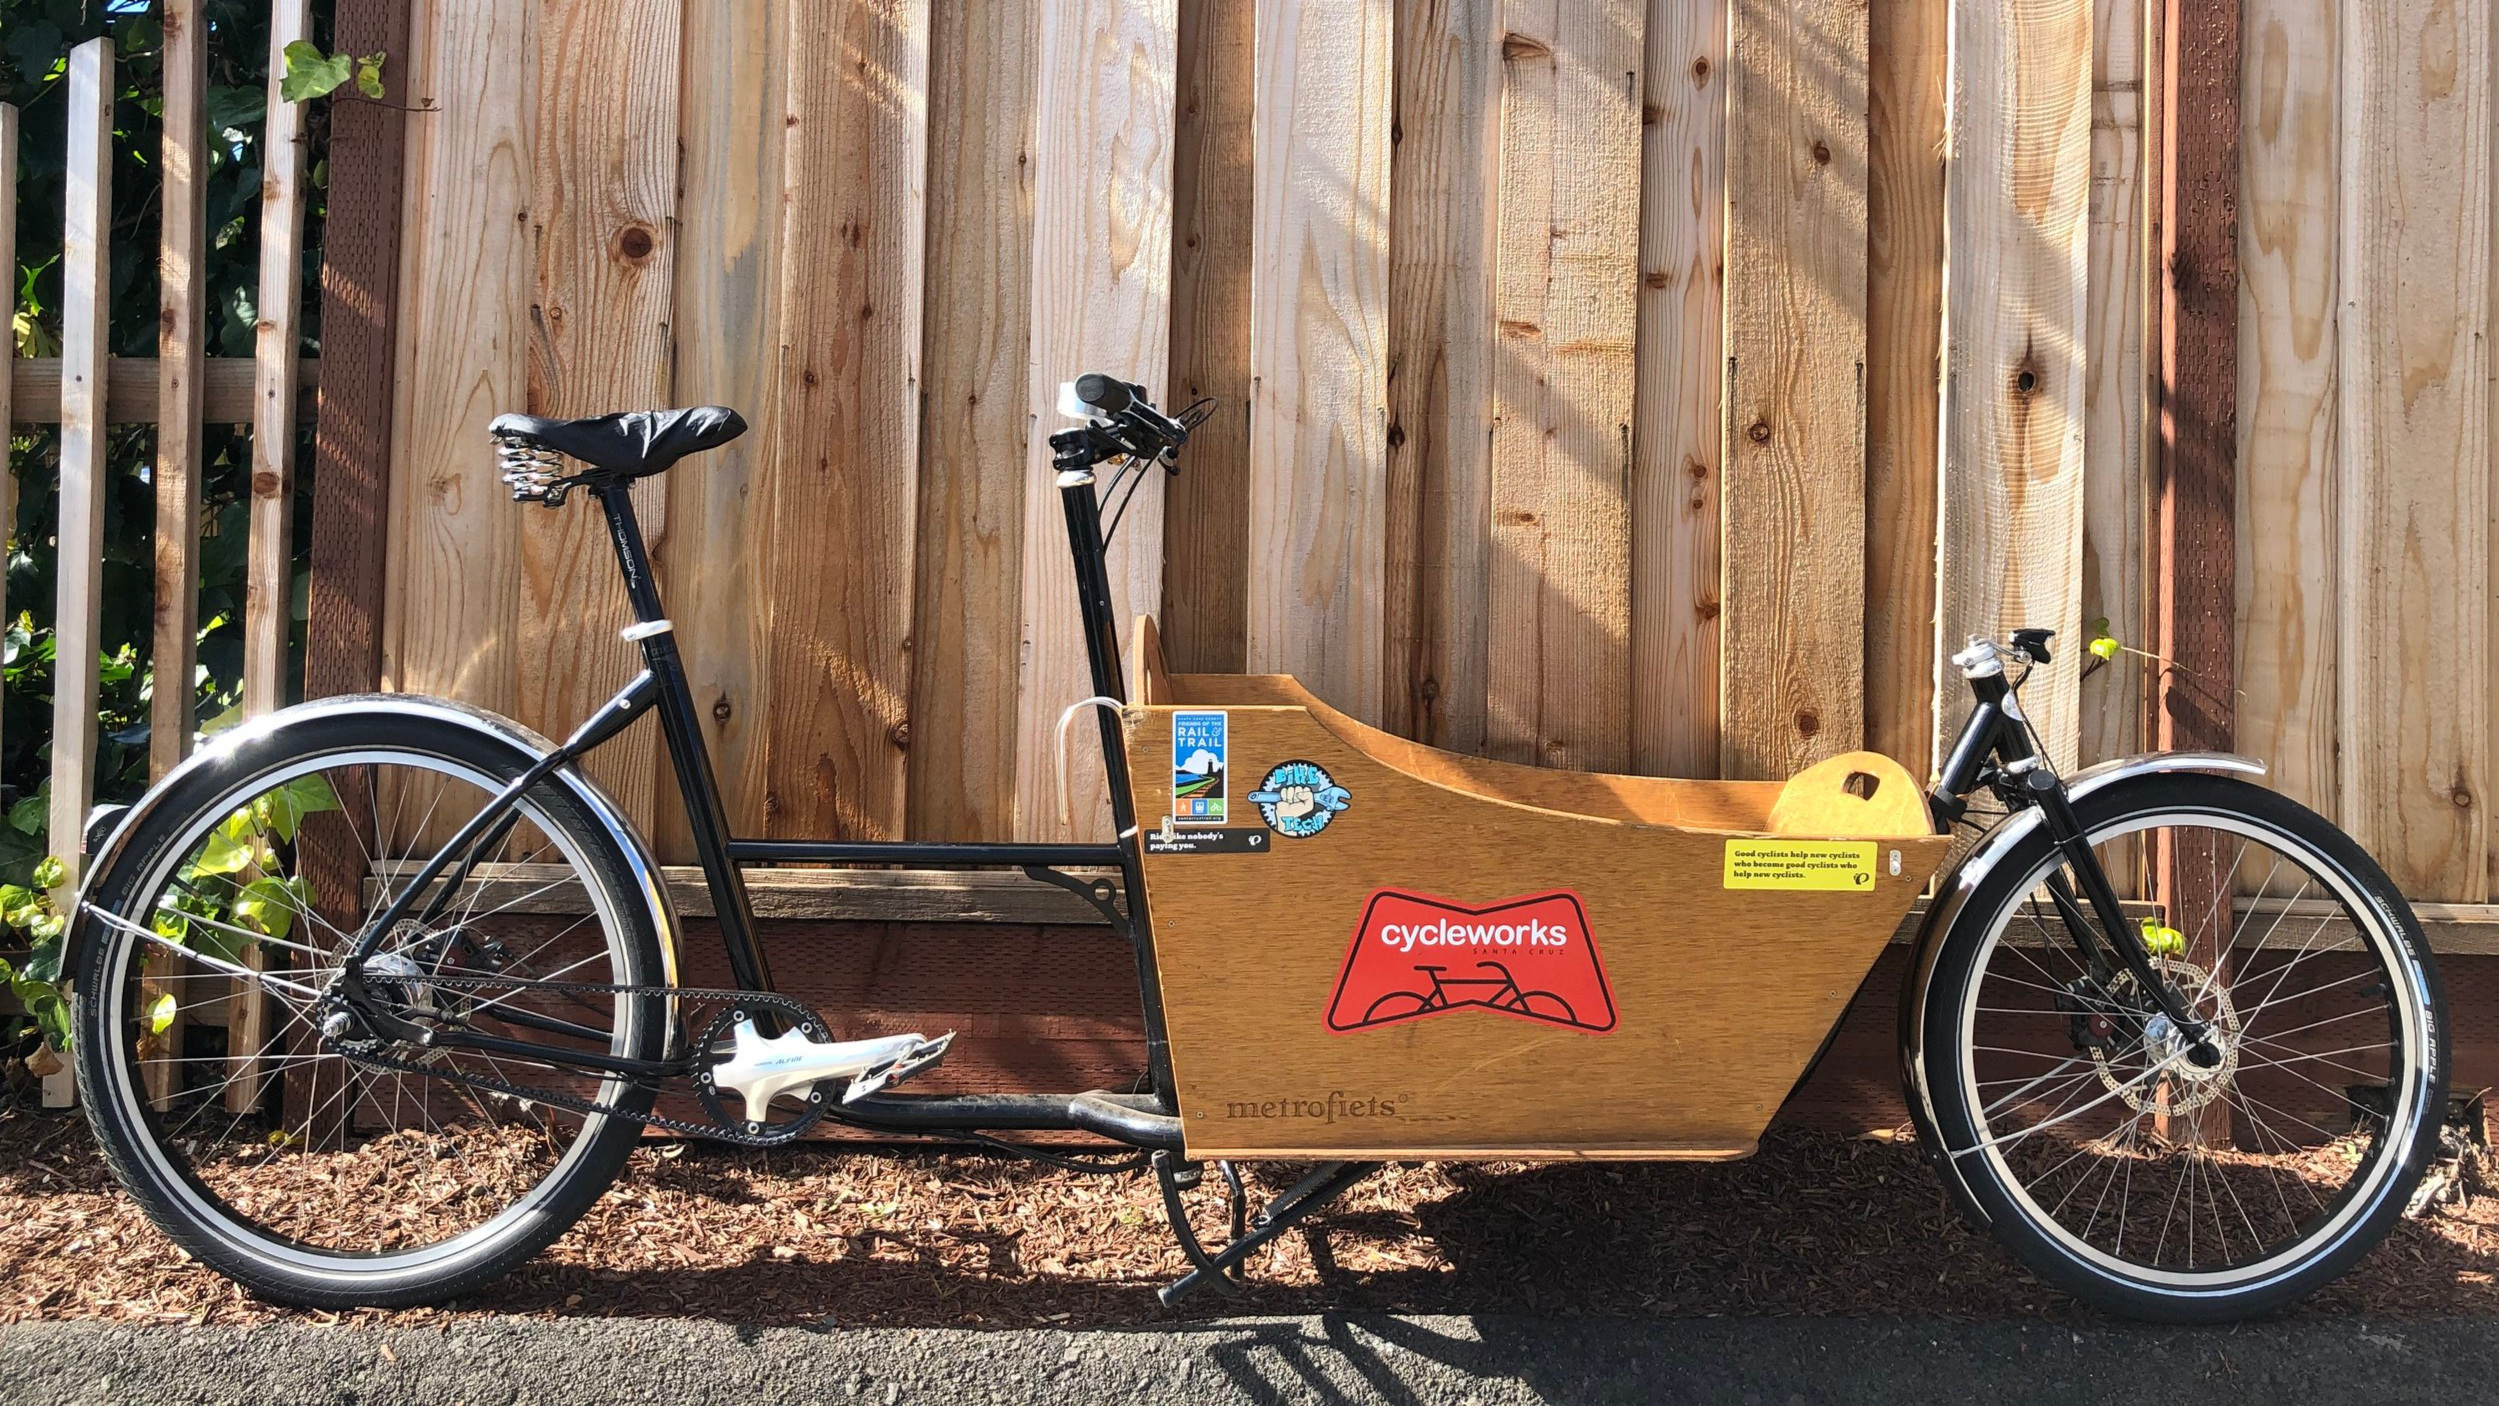 Metrofiets Cargo Bike - In it for the long haul!